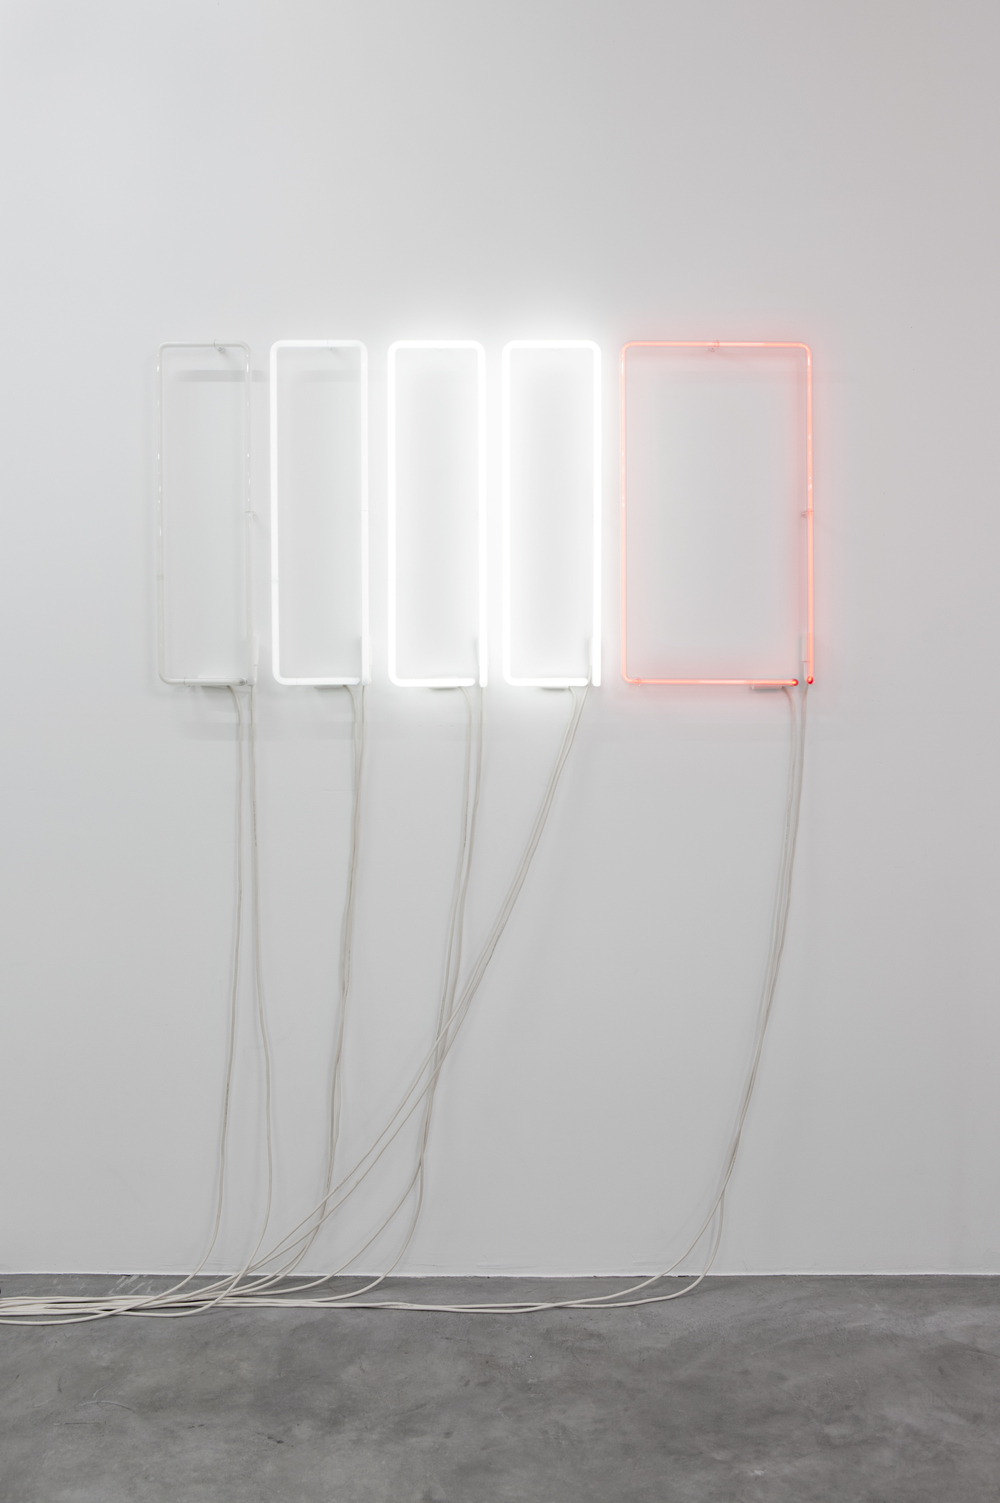 NLP3, 2013, Neon, sequenced control system, 70 x 130 cm